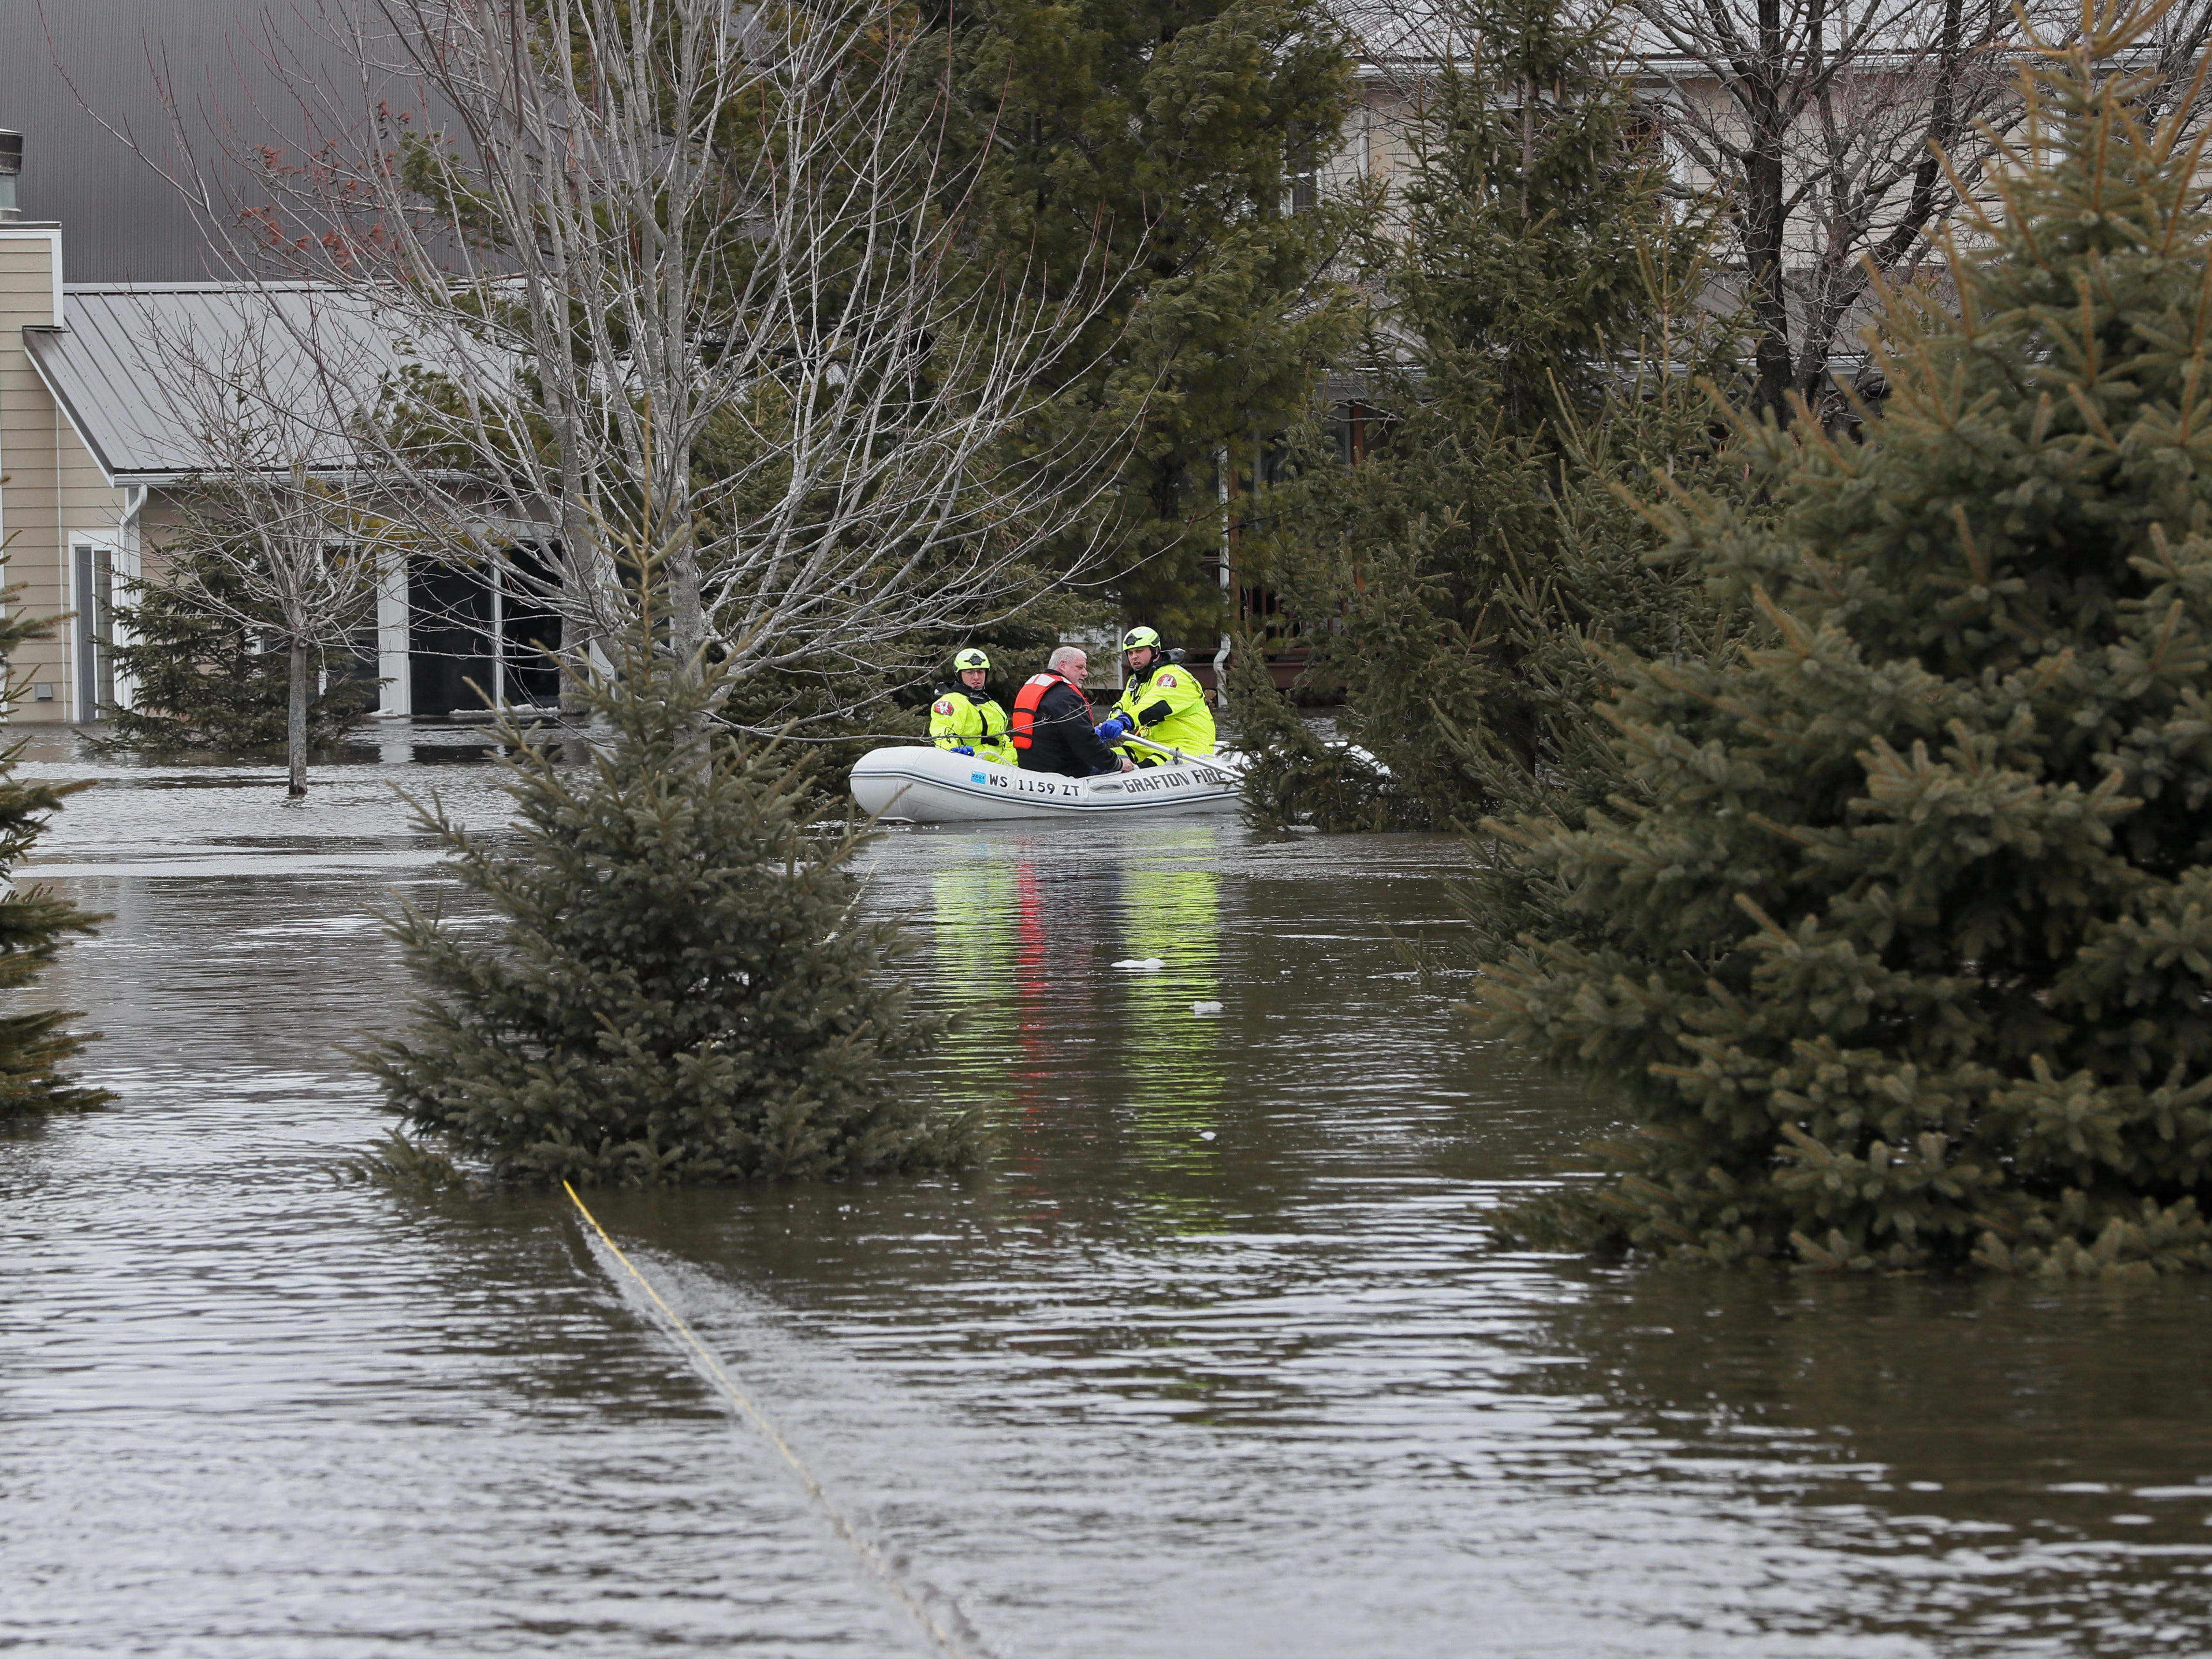 Grafton firefighters bring a man to high ground the rescued from the home at rear. March 15, 2019 Grafton firefighters rescued two people from the Riverview Kennel on the Milwaukee River at  1584 Pioneer Rd in Cedarburg.  Ice going out on the river was blocked by bridge diverting flow over the Cty Highway C and the surround low areas.